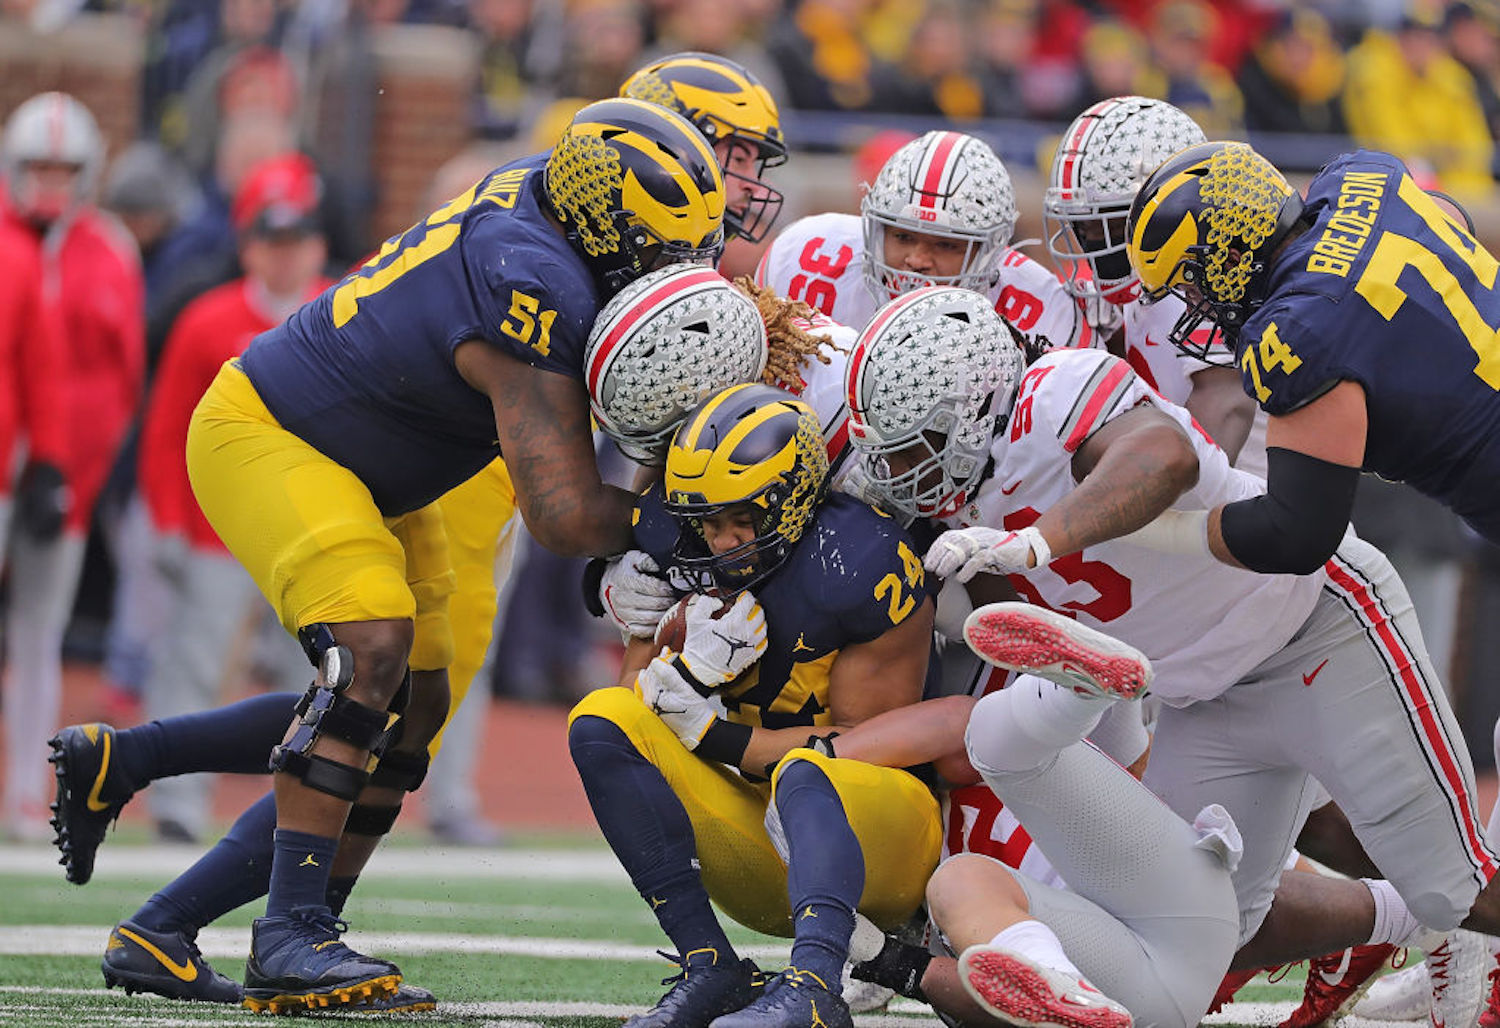 Ohio State and Michigan won't play this season for the first time in decades. When did the rivalry start and when was the last time The Game wasn't played?